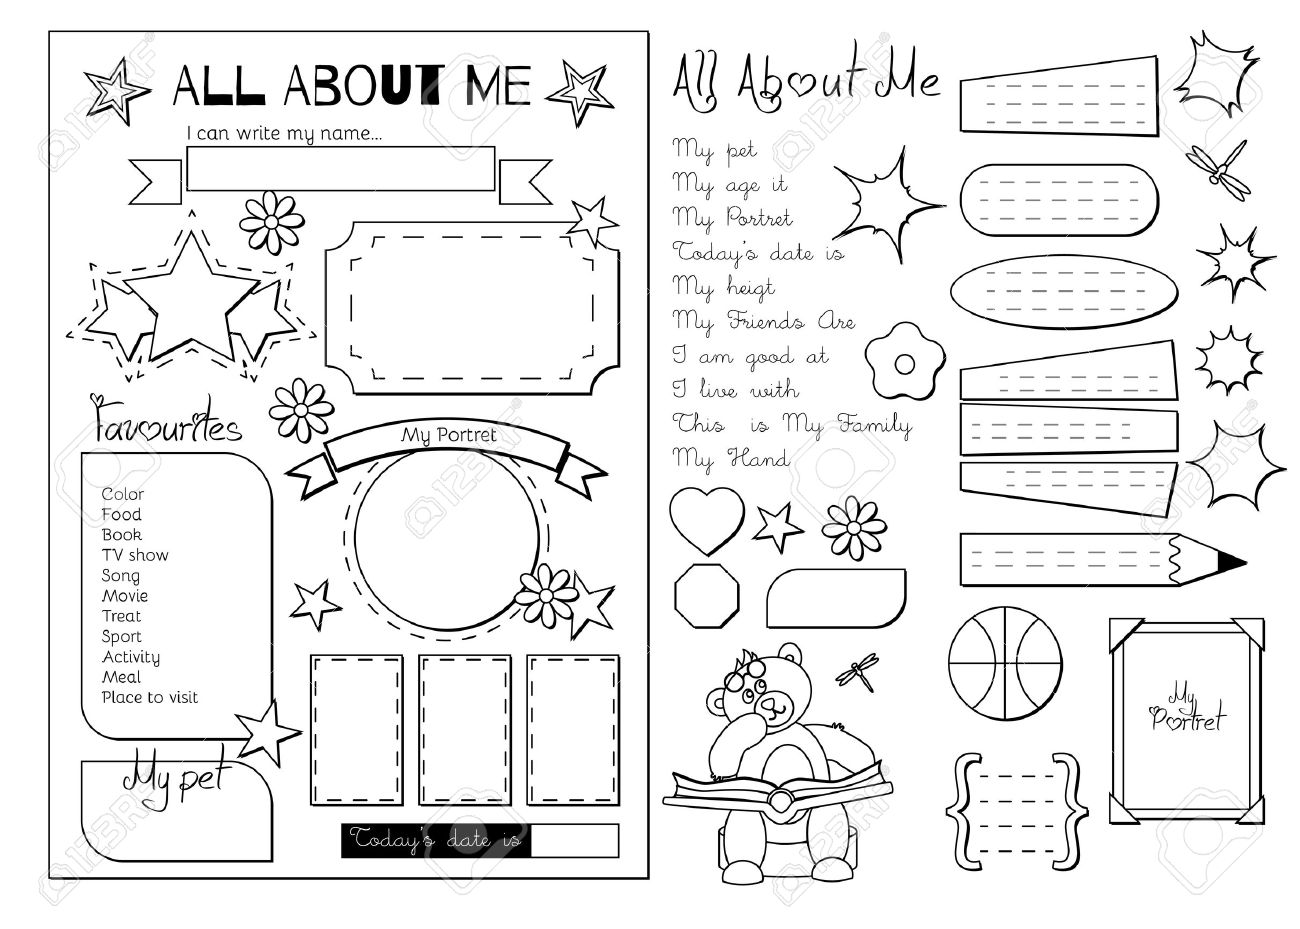 Back to School. All About Me questionnaire. Printable.